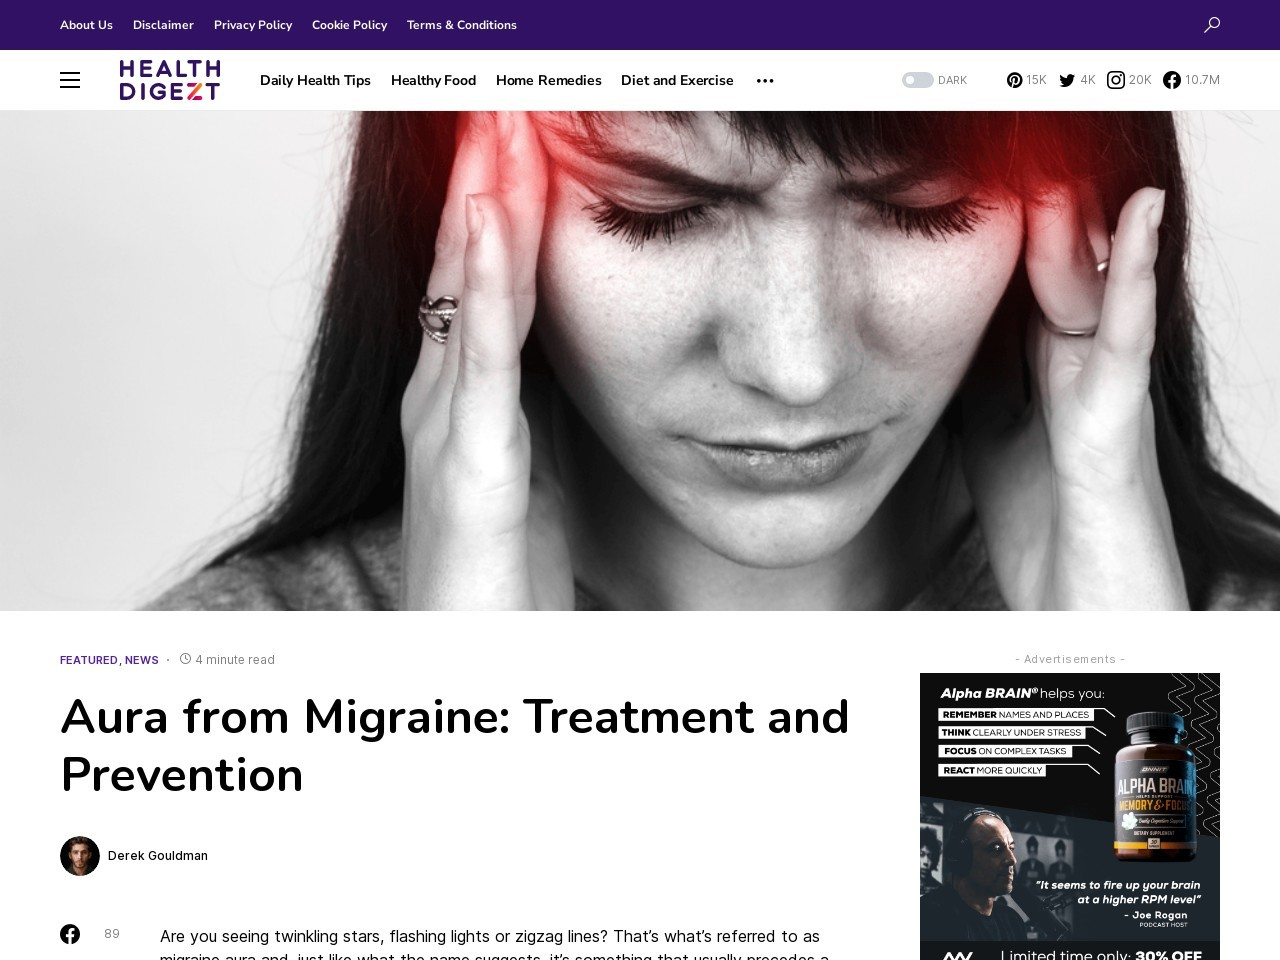 Aura from Migraine: Treatment and Prevention